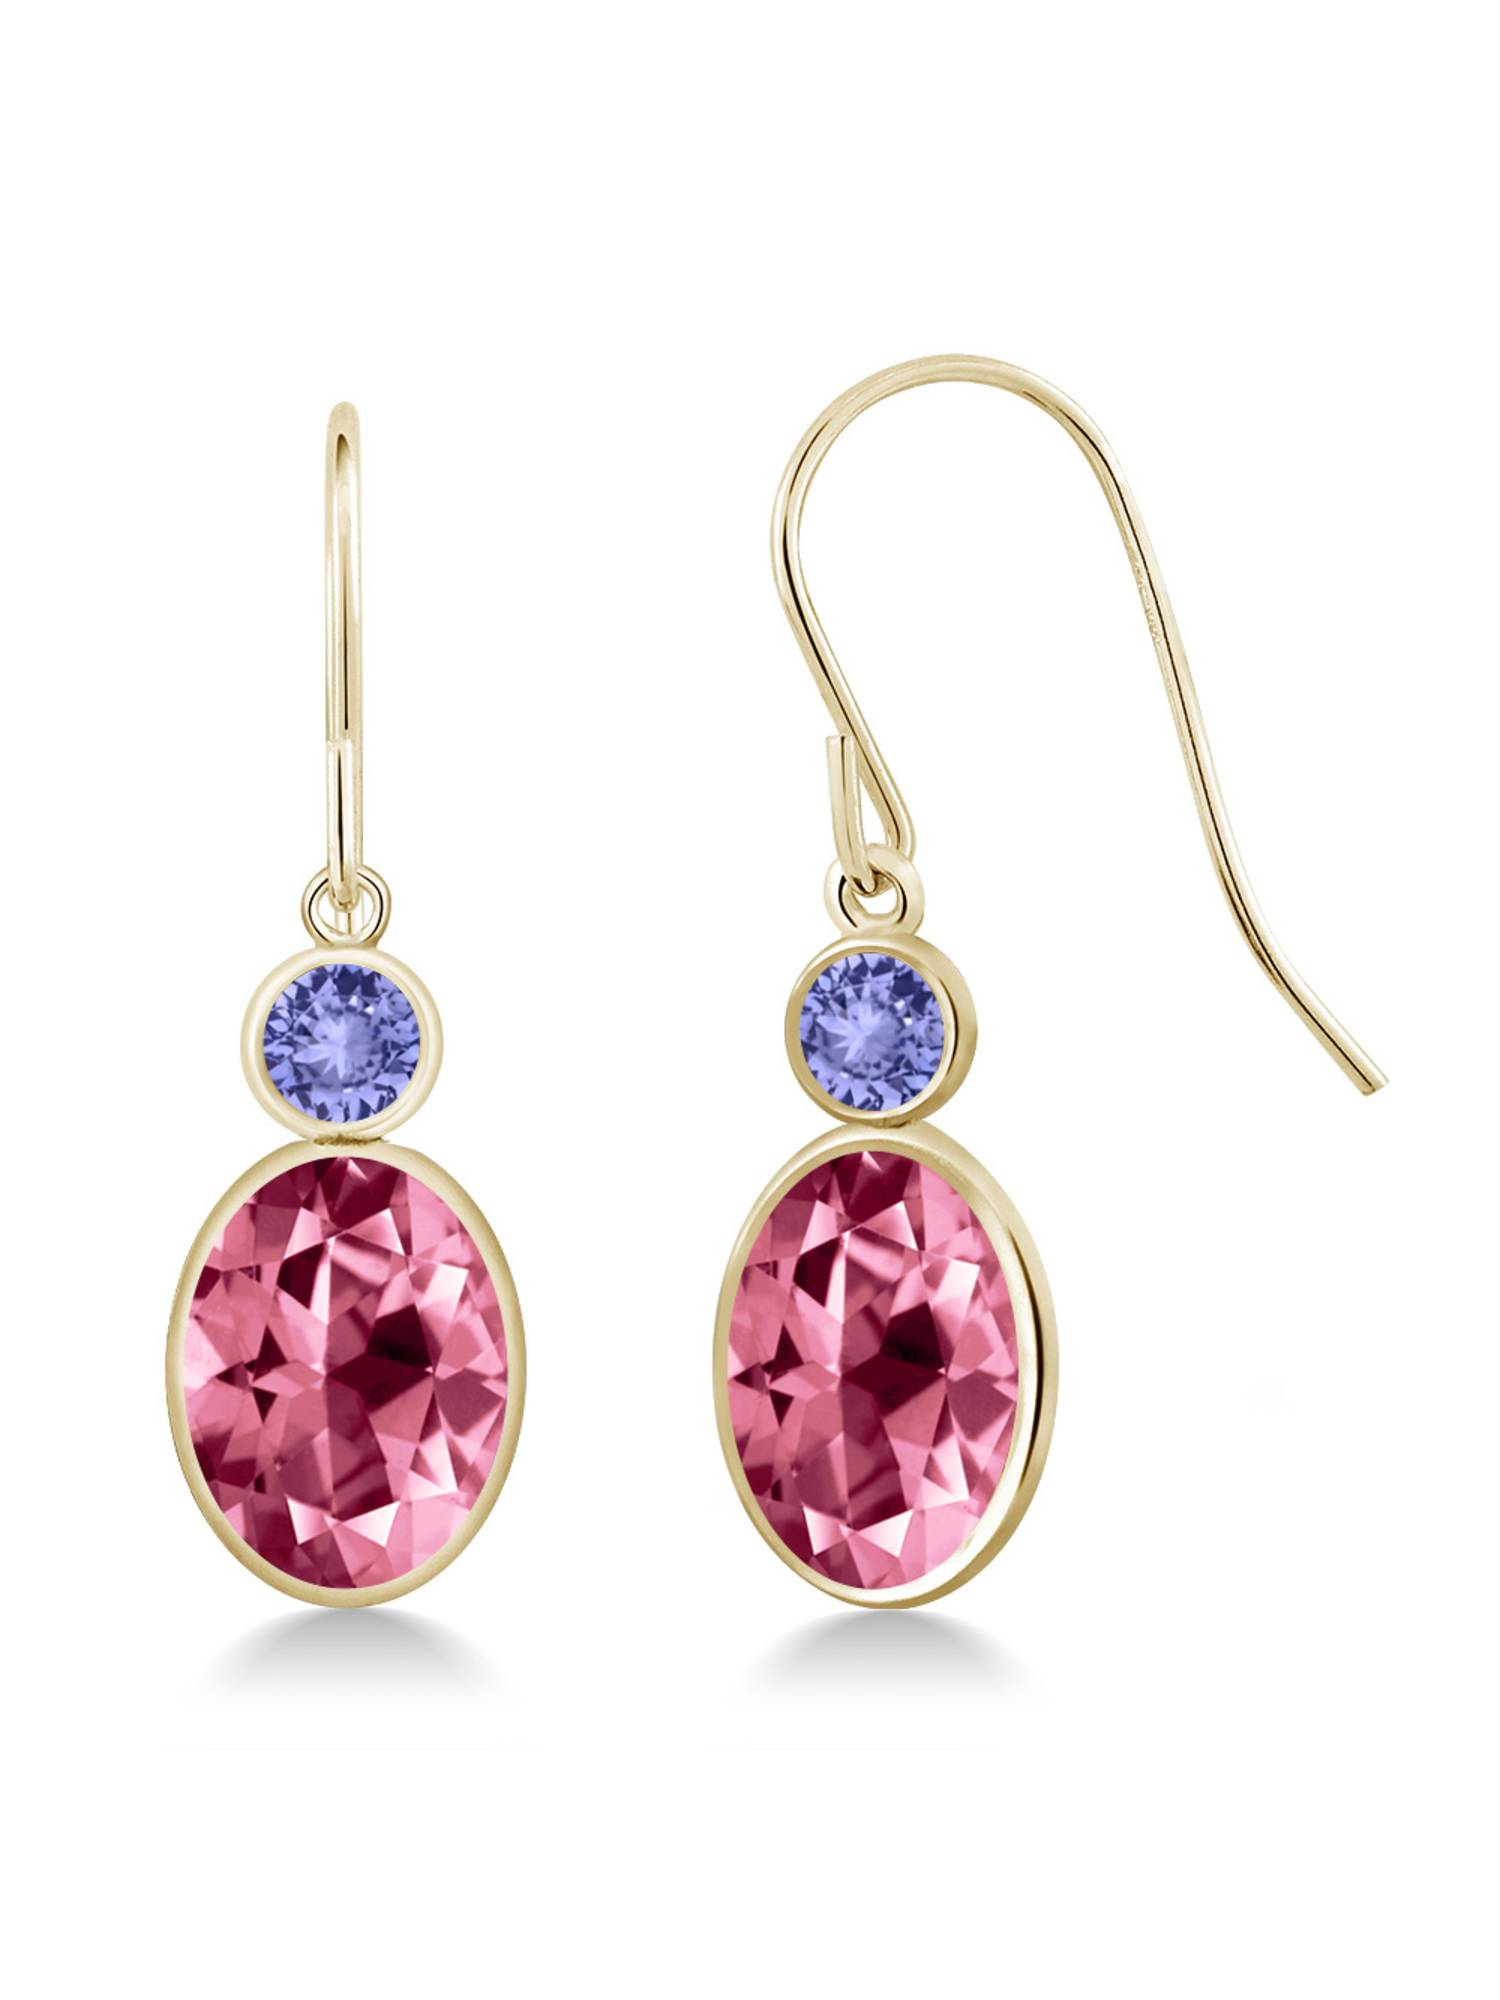 14K Yellow Gold Earrings Tanzanite Set with Oval Pink Topaz from Swarovski by